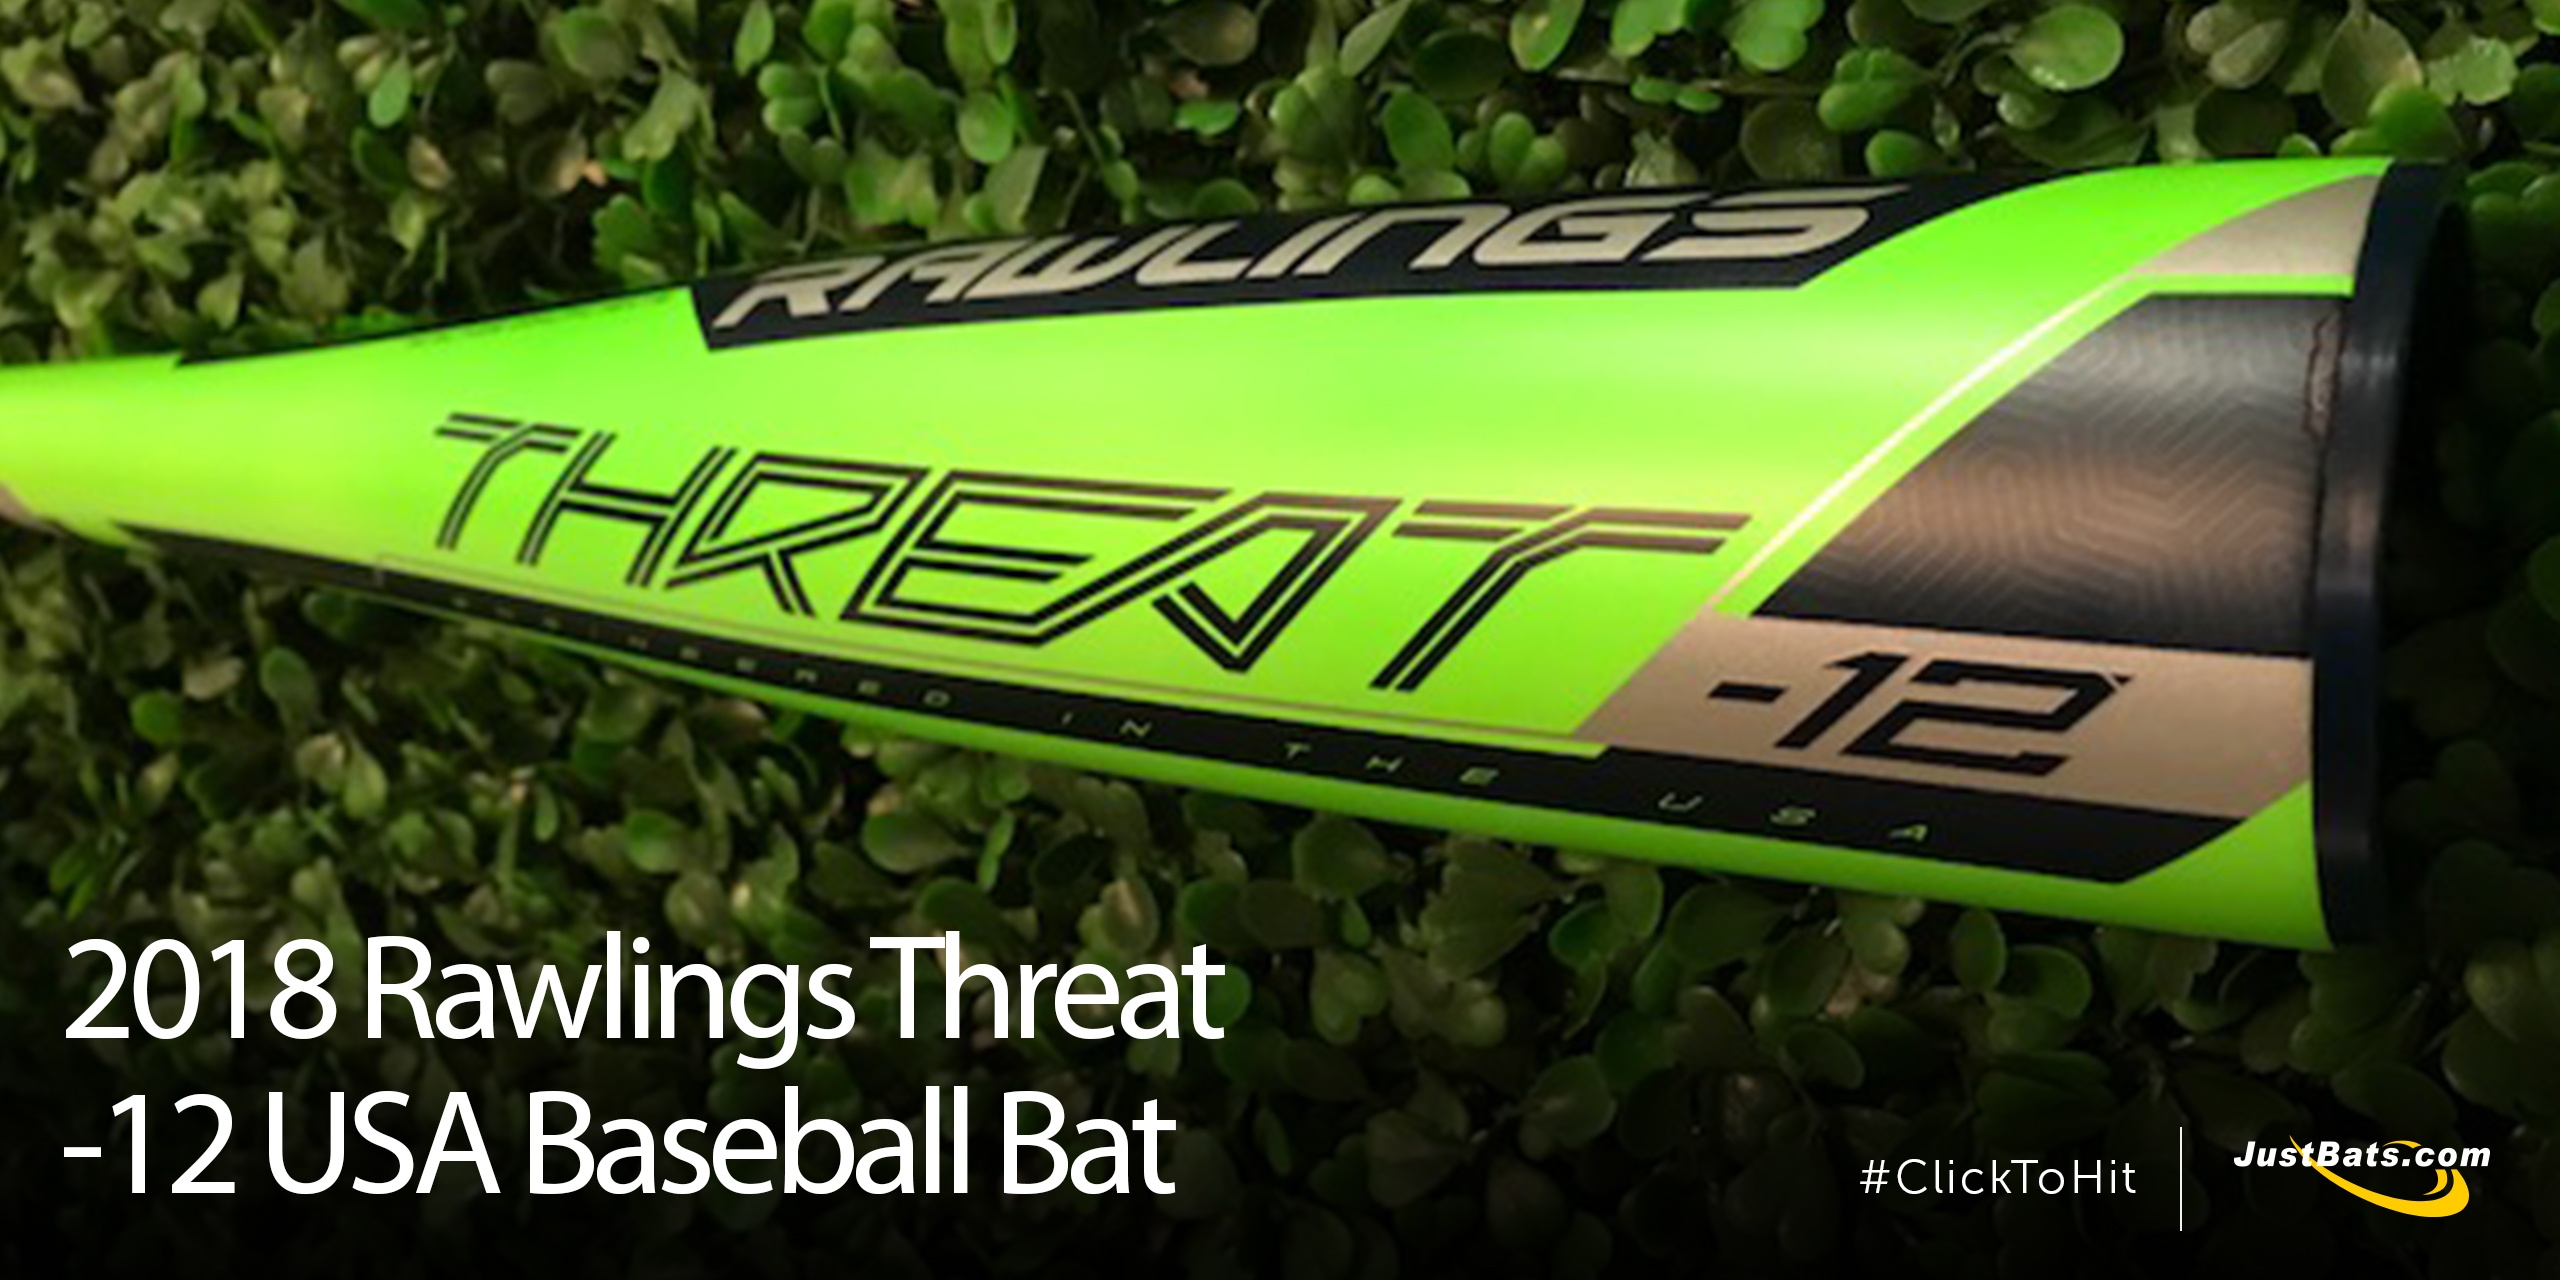 Rawlings Threat - Blog